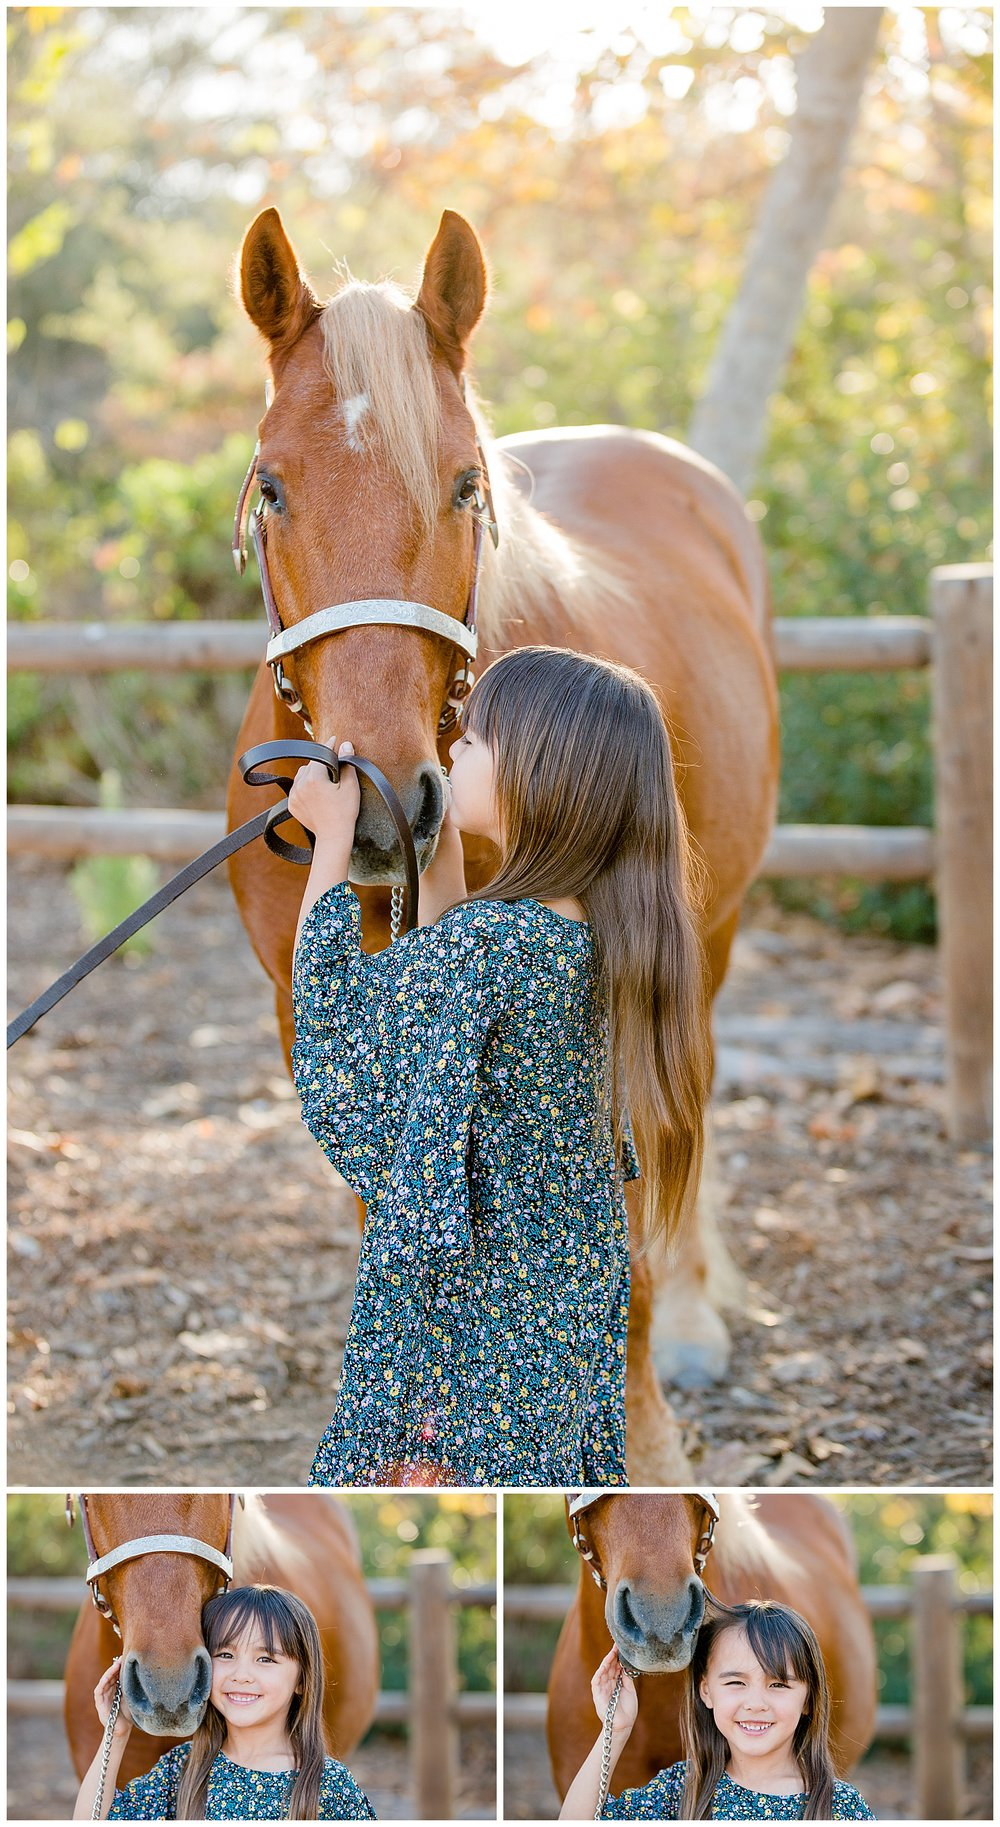 Black Background Horse Rider Equine Photographer Southern California Sara Shier Photography SoCal Equestrian Cowgirl_0277.jpg